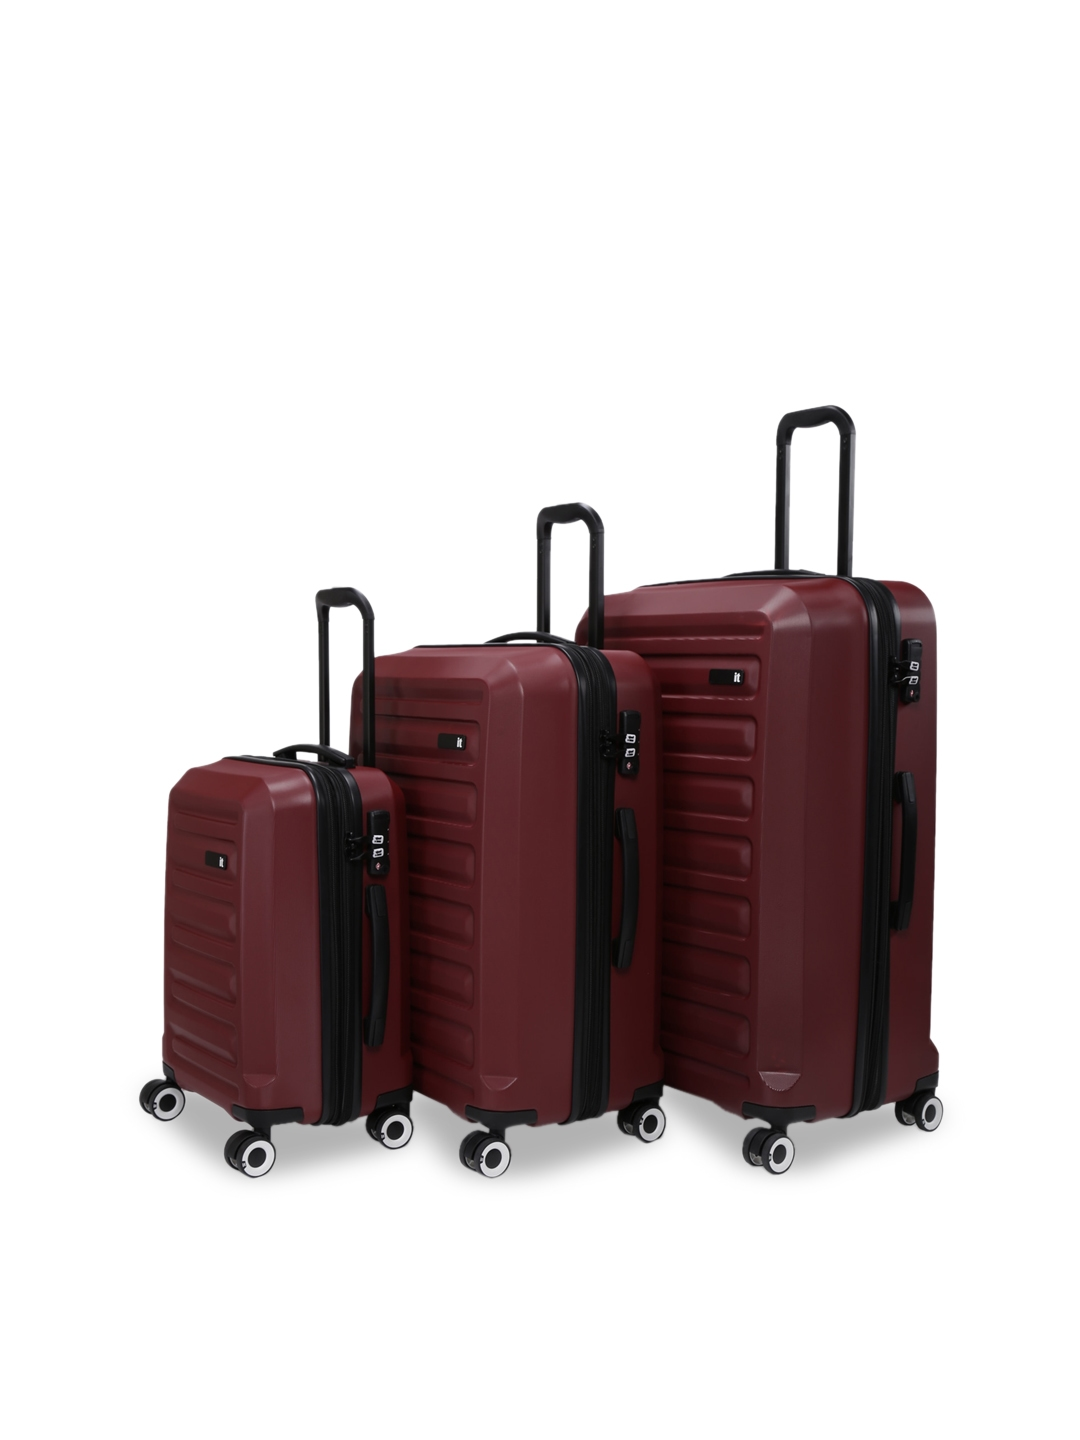 IT luggage Unisex Set Of 3 Red Intervolve 360 Degree Rotation Hard Sided Trolley Suitcases